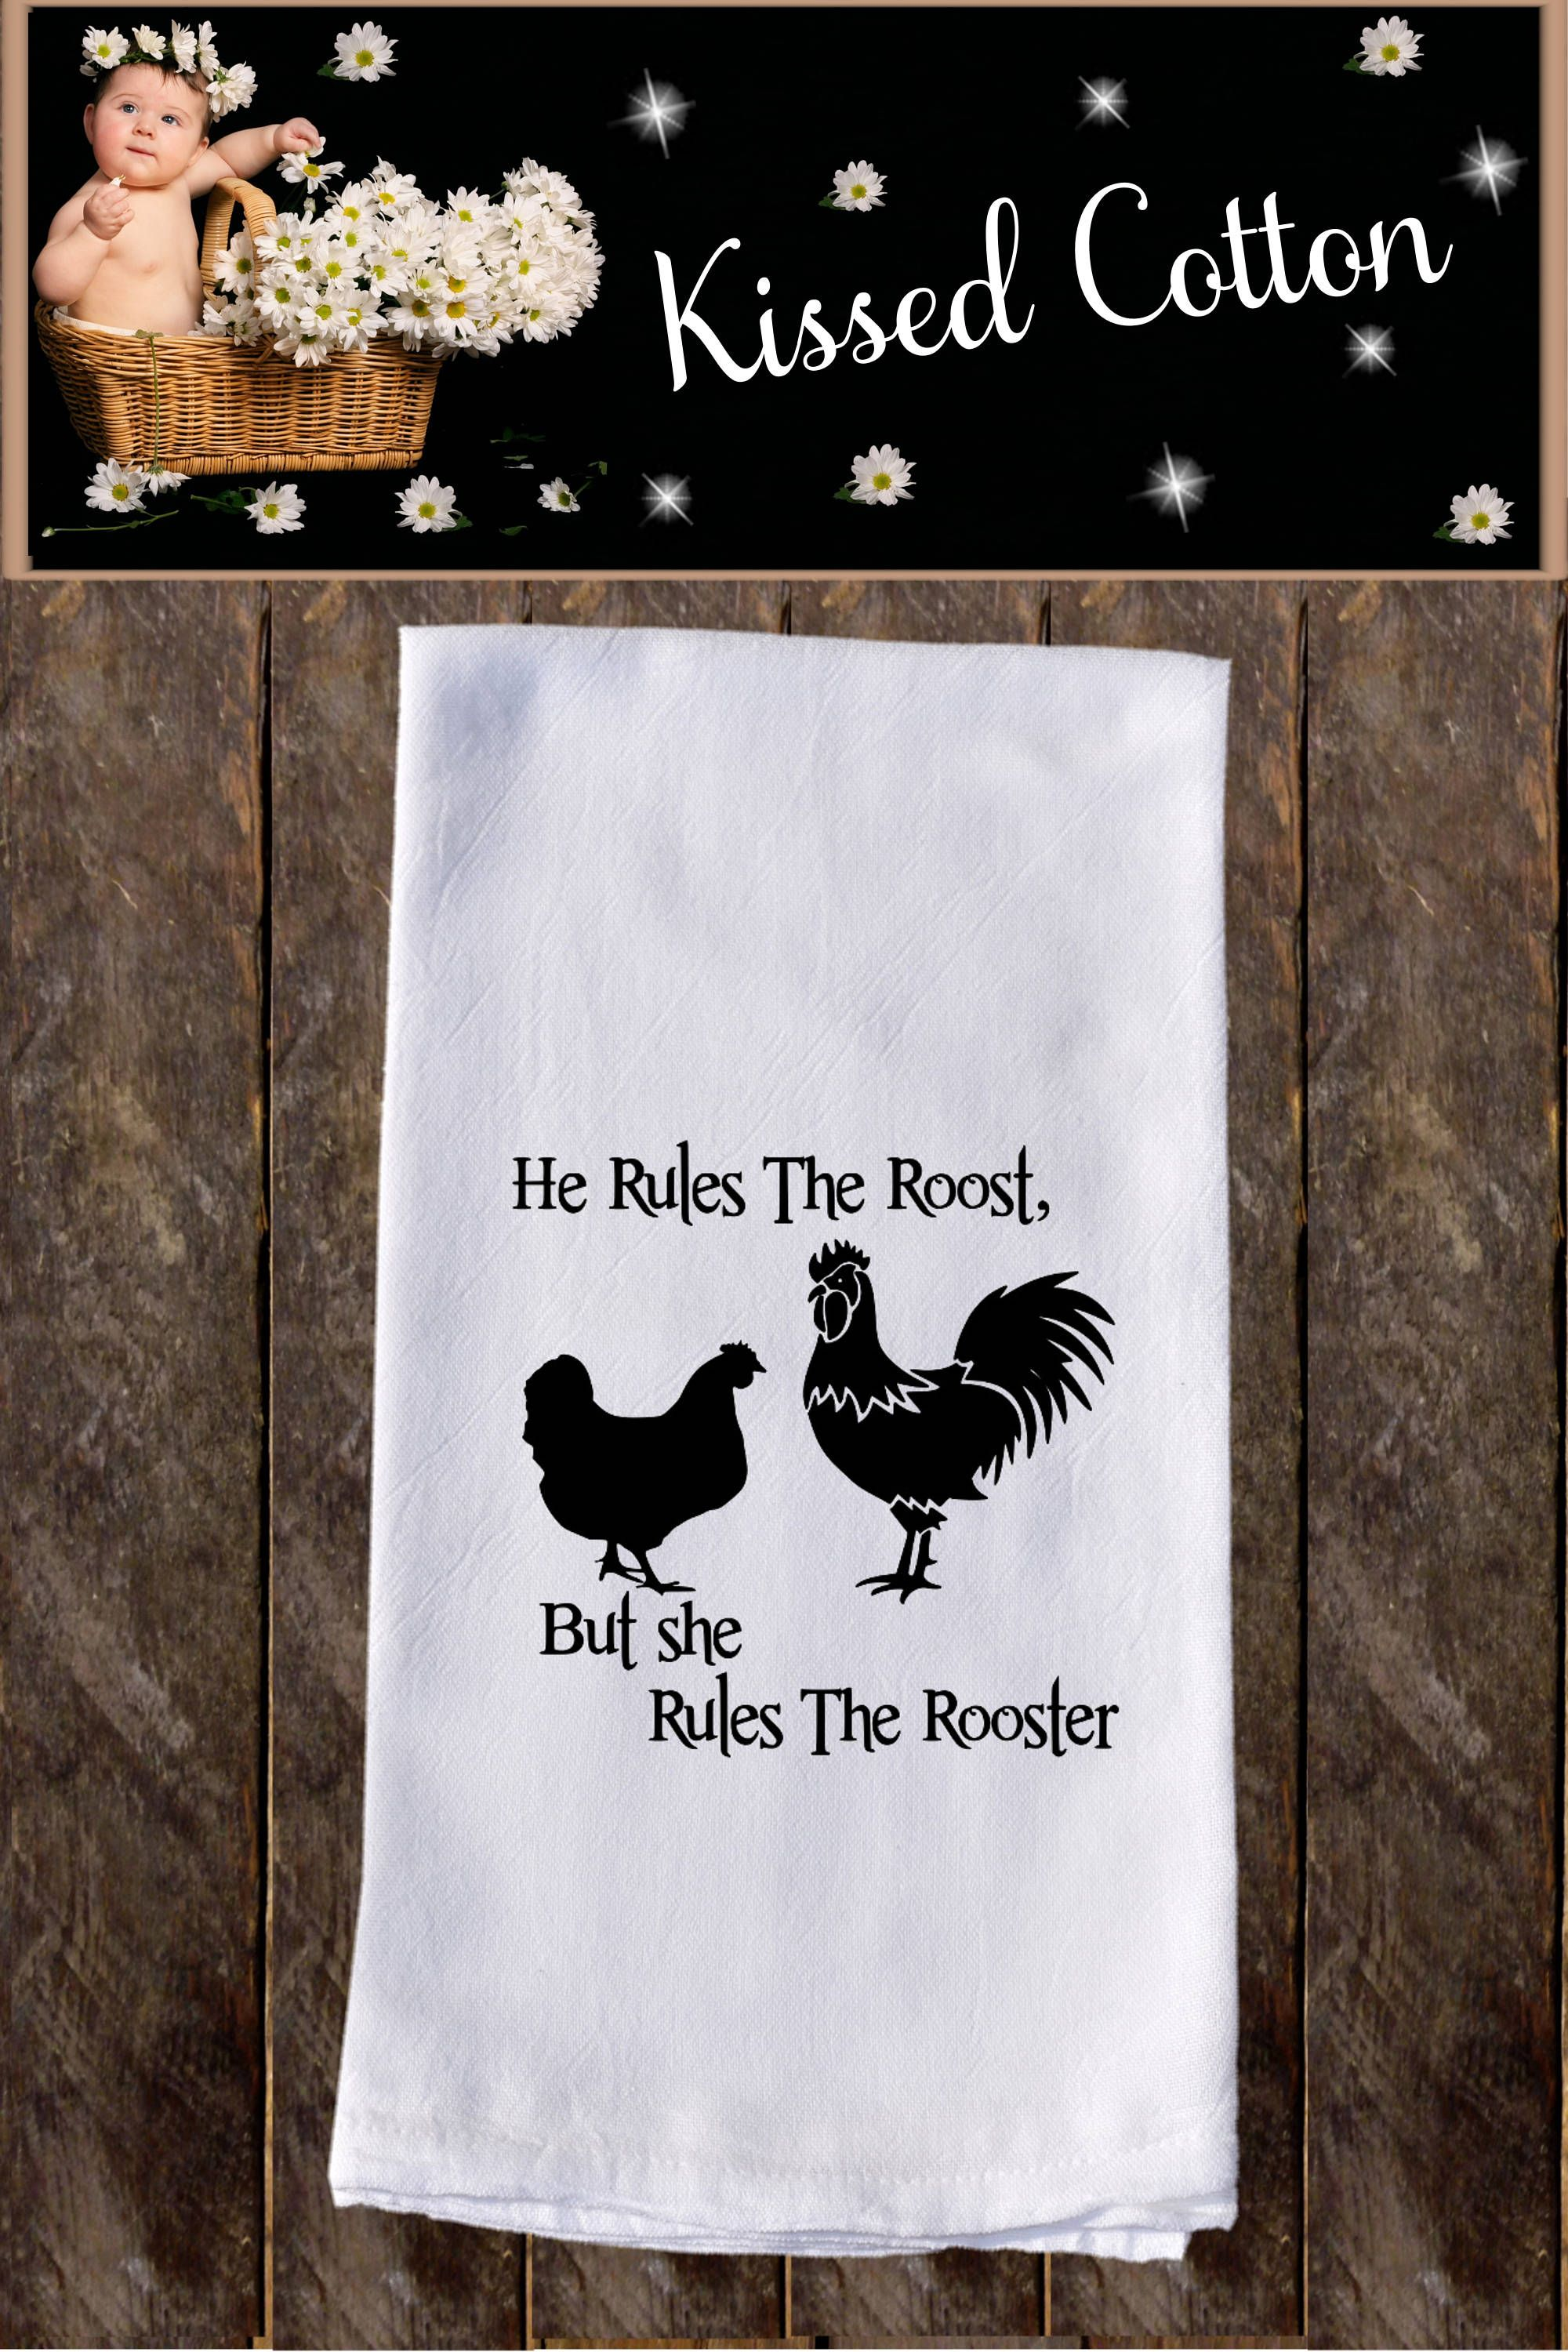 She Rules The Rooster Funny Dish Towels , Funny Tea Towels , Flour Sack Towel Kitchen , Custom Tea Towel Kitchen Towel KC118 #dishtowels